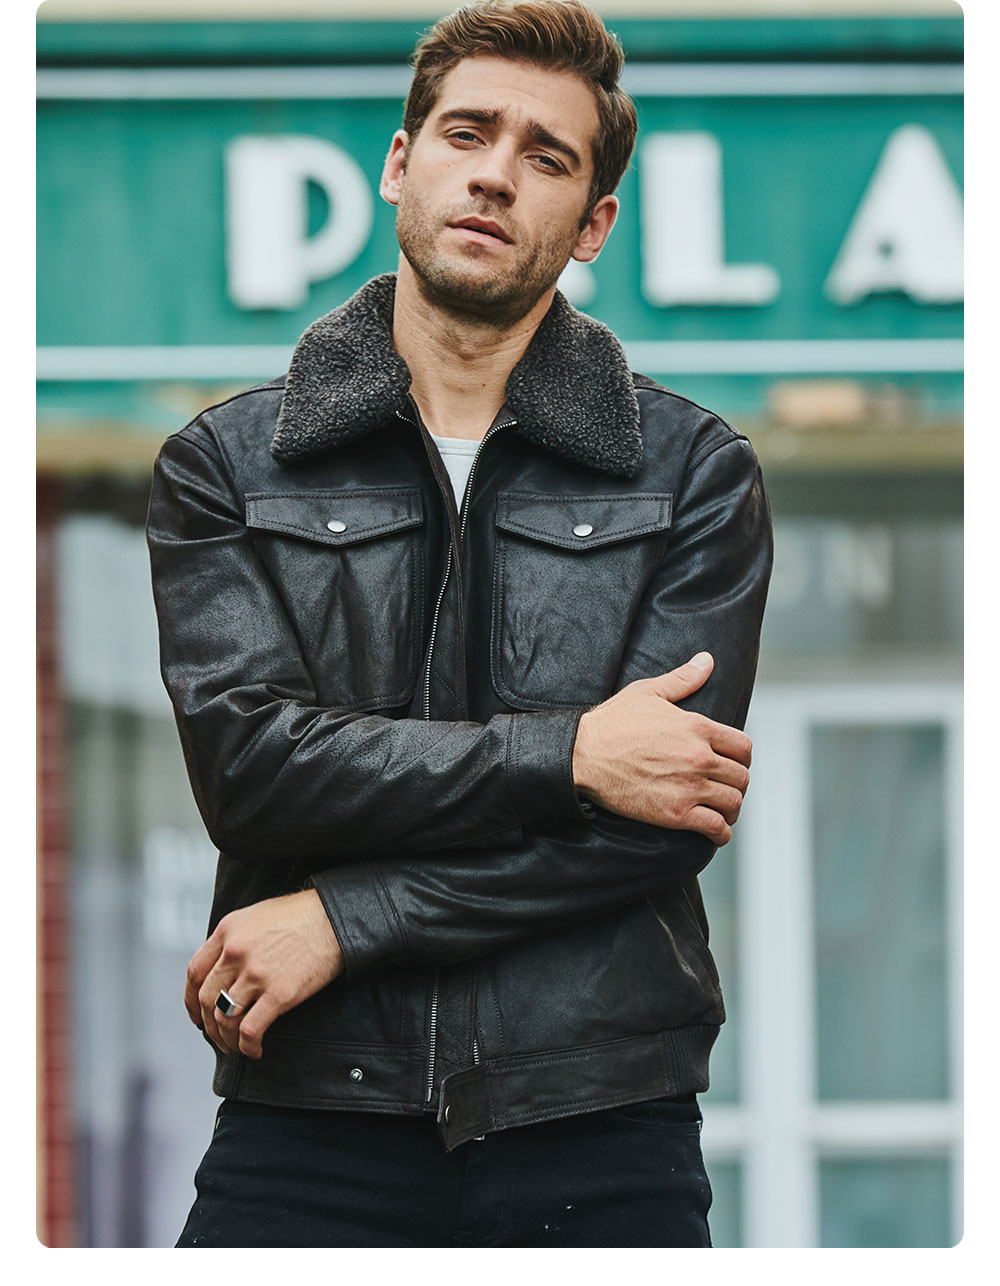 H8d5e64656d664dd189a11b1c8e59882aR FLAVOR Men's Real Leather Jacket Genuine Leather jacket with faux fur collar male Motorcycle warm coat Genuine Leather Jacket